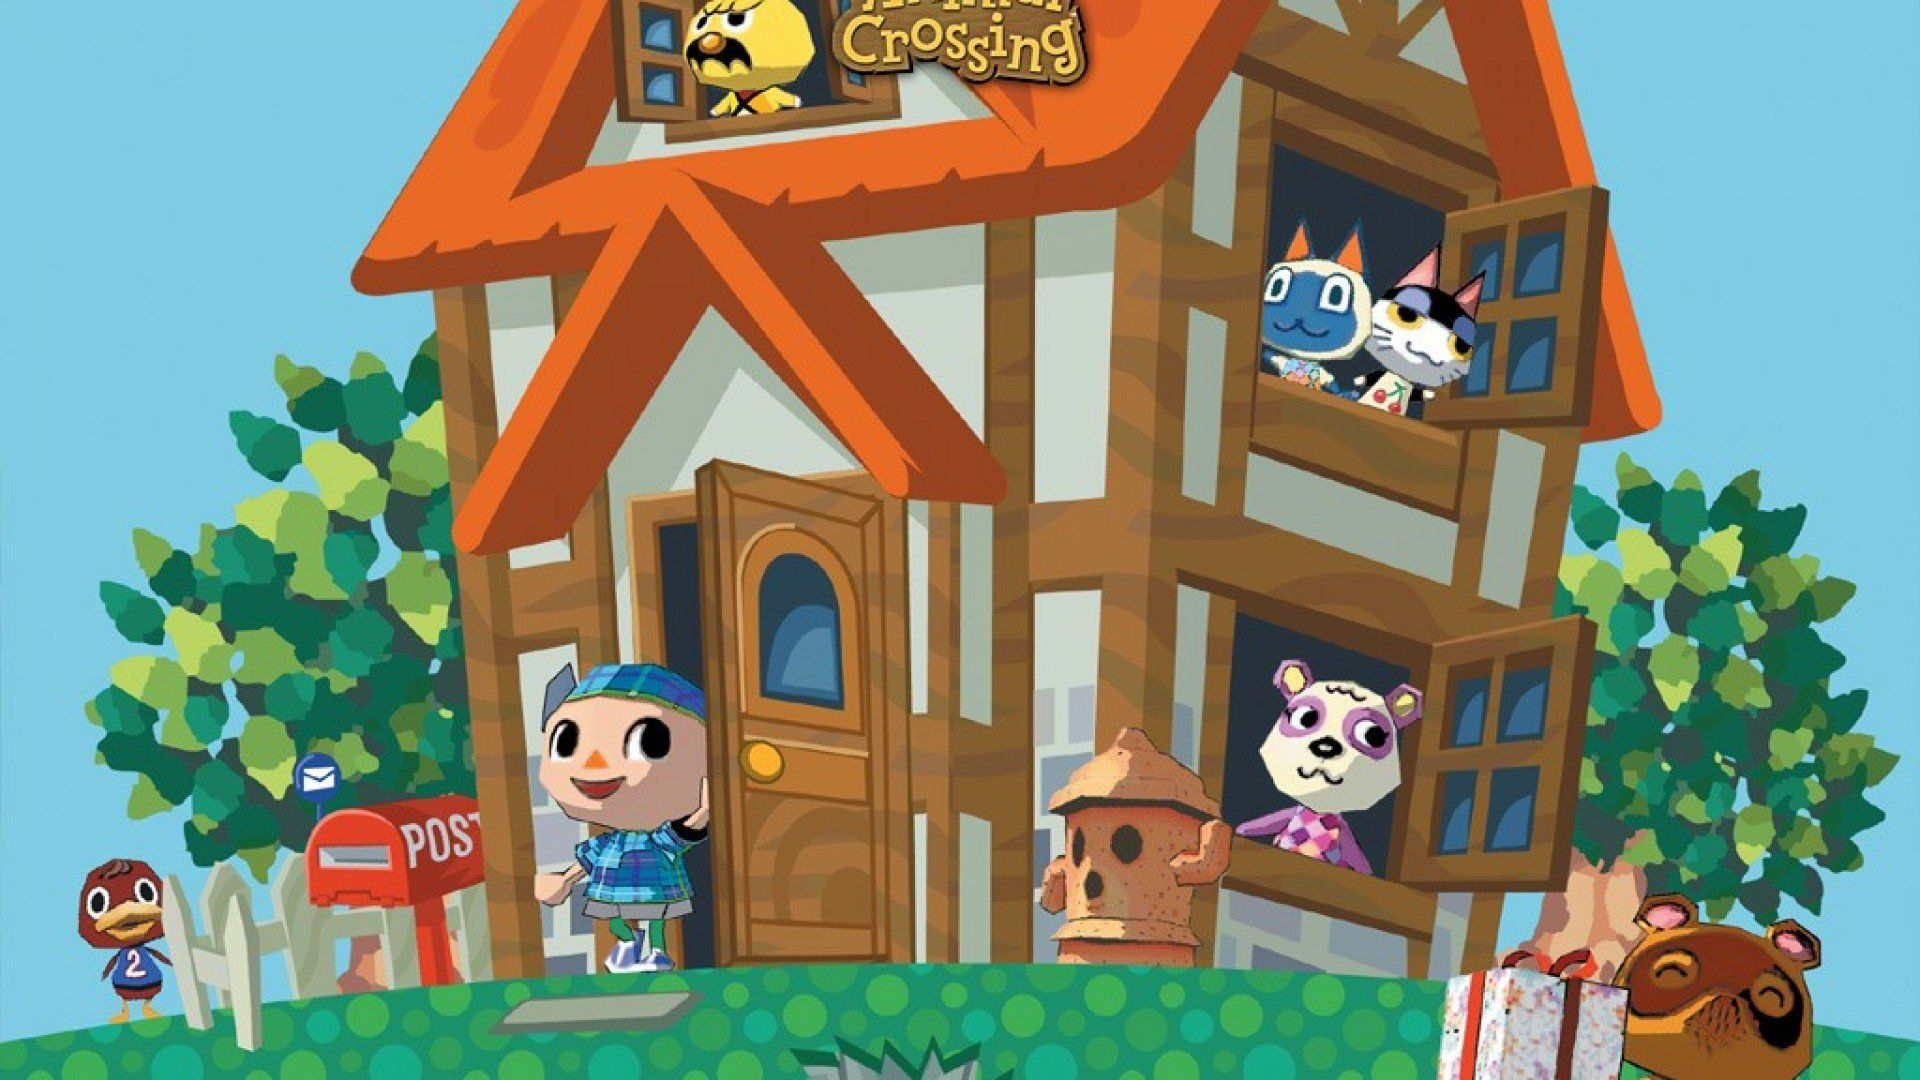 Animal Crossing Gamecube Wallpaper Animal crossing music